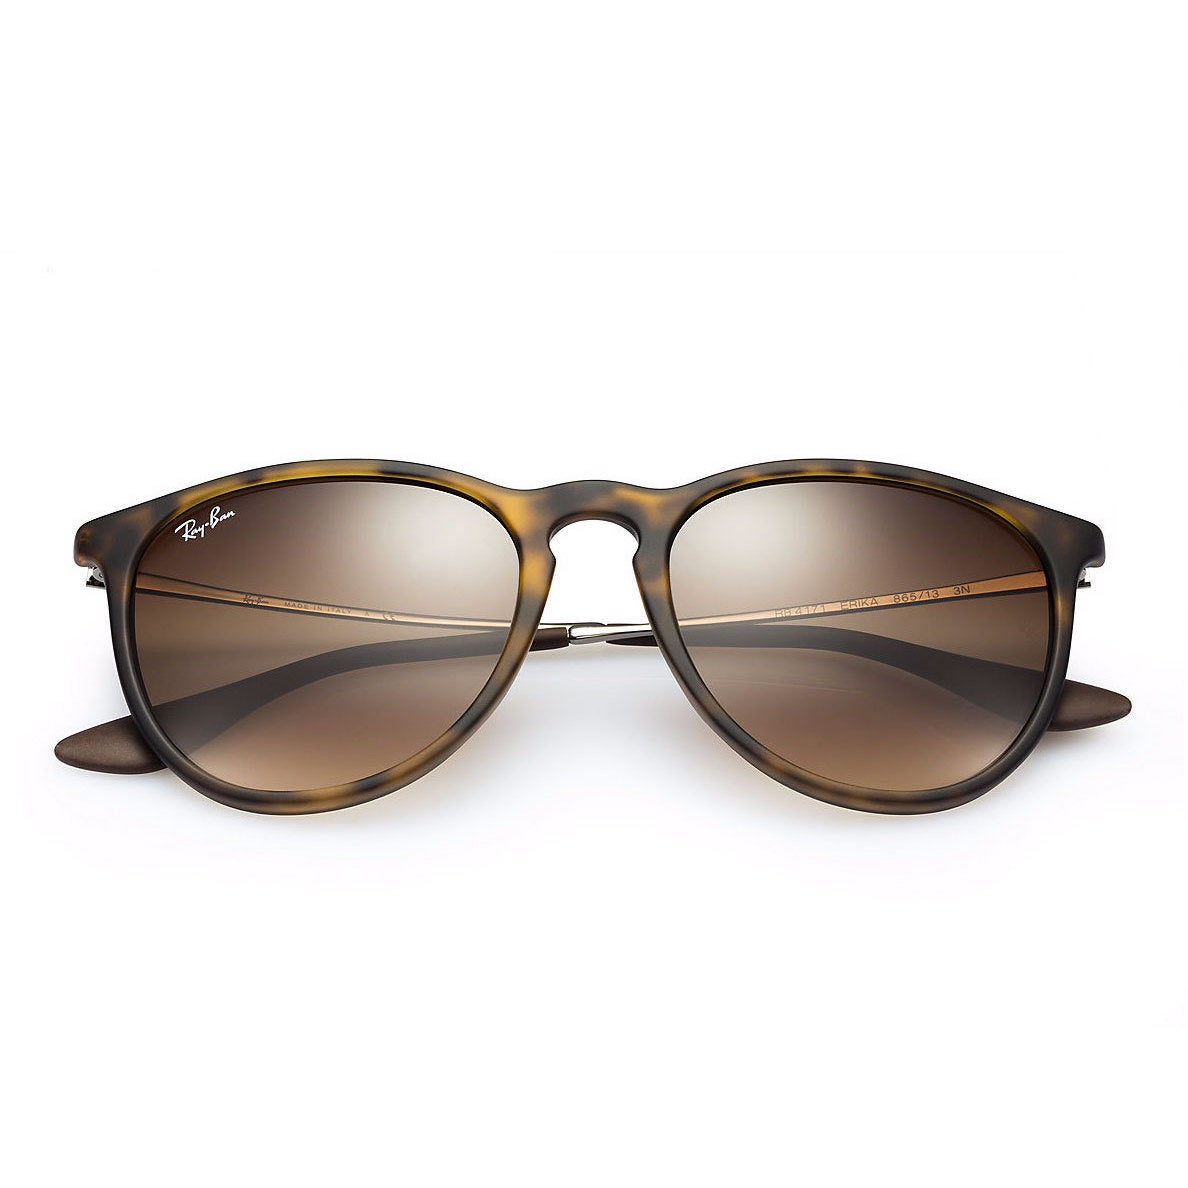 1127fc0e489 Shop Ray-Ban Erika RB4171 865 13 Tortoise Gunmetal Frame Brown Gradient  54mm Lens Sunglasses - Free Shipping Today - Overstock - 12382212